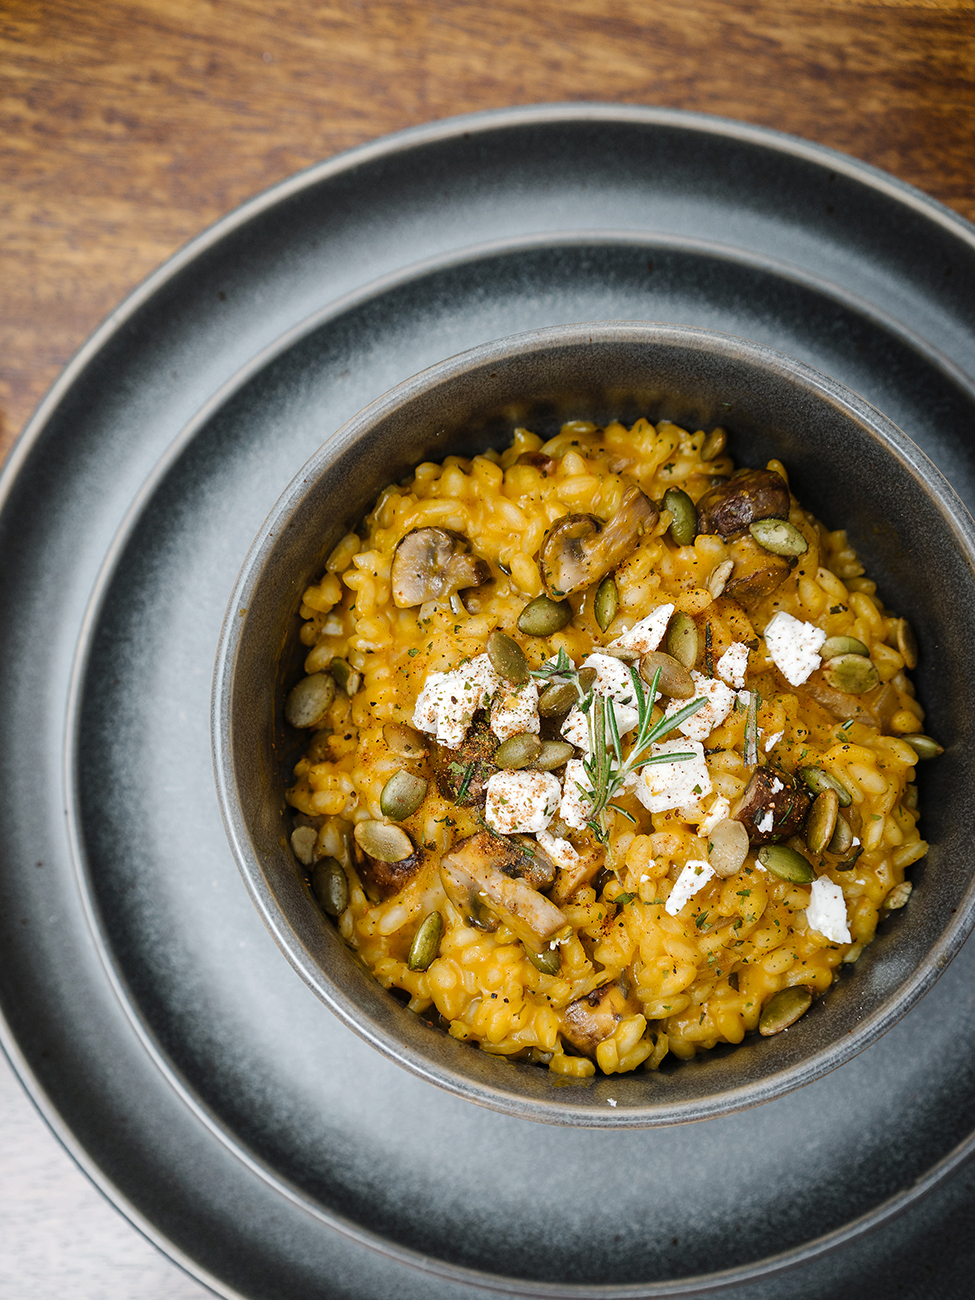 Pumpkin risotto served in a black bowl